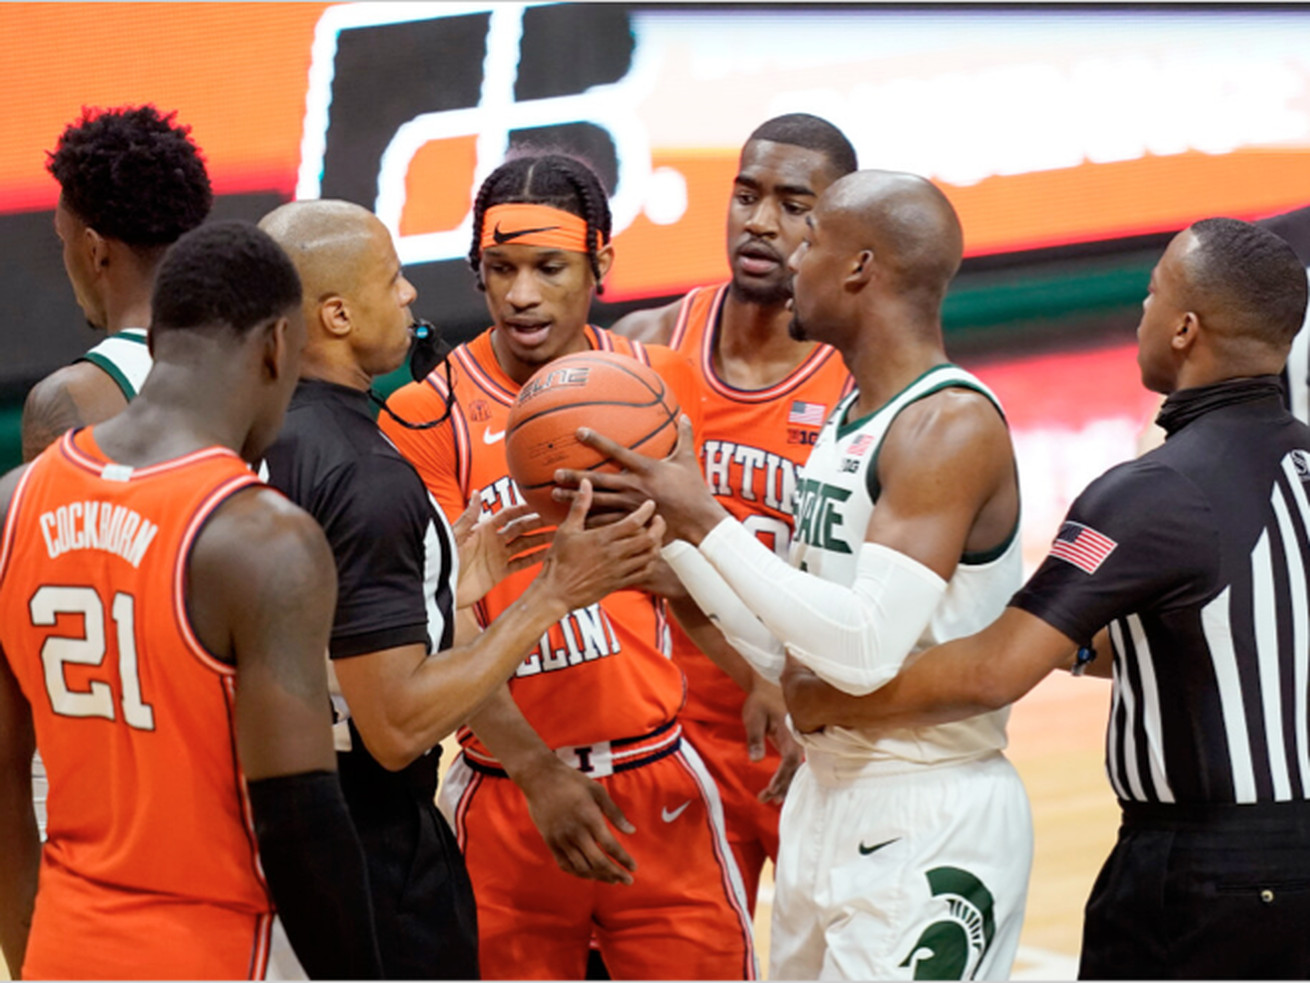 Illinois out of sync in loss to Michigan State